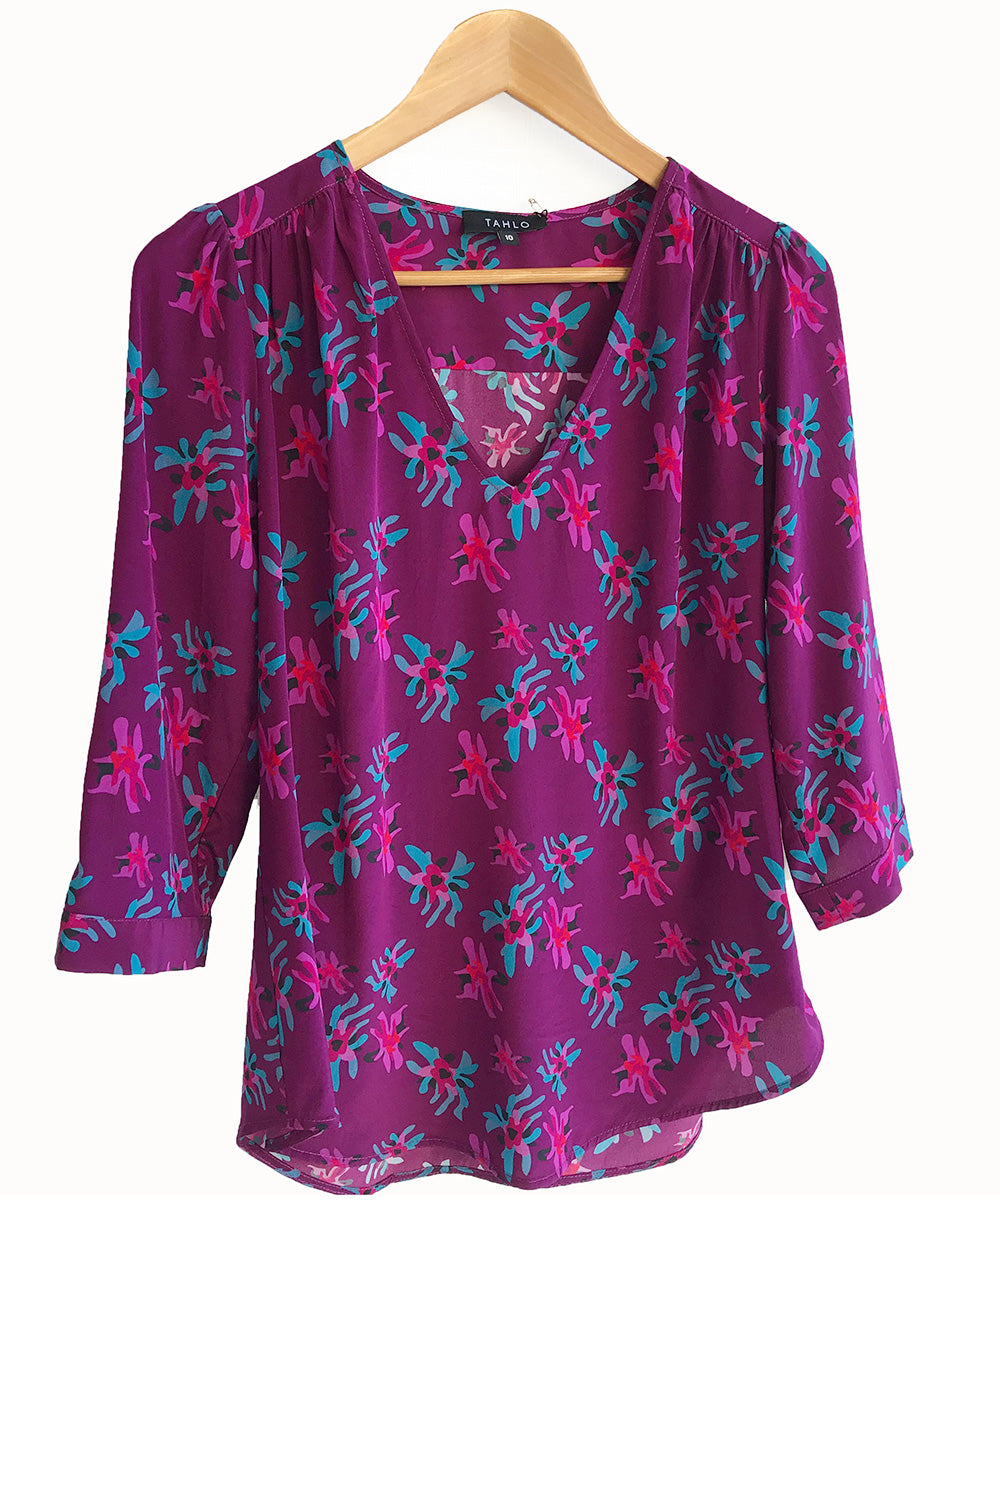 Veda Silk Blouse - Dogwood on Plum